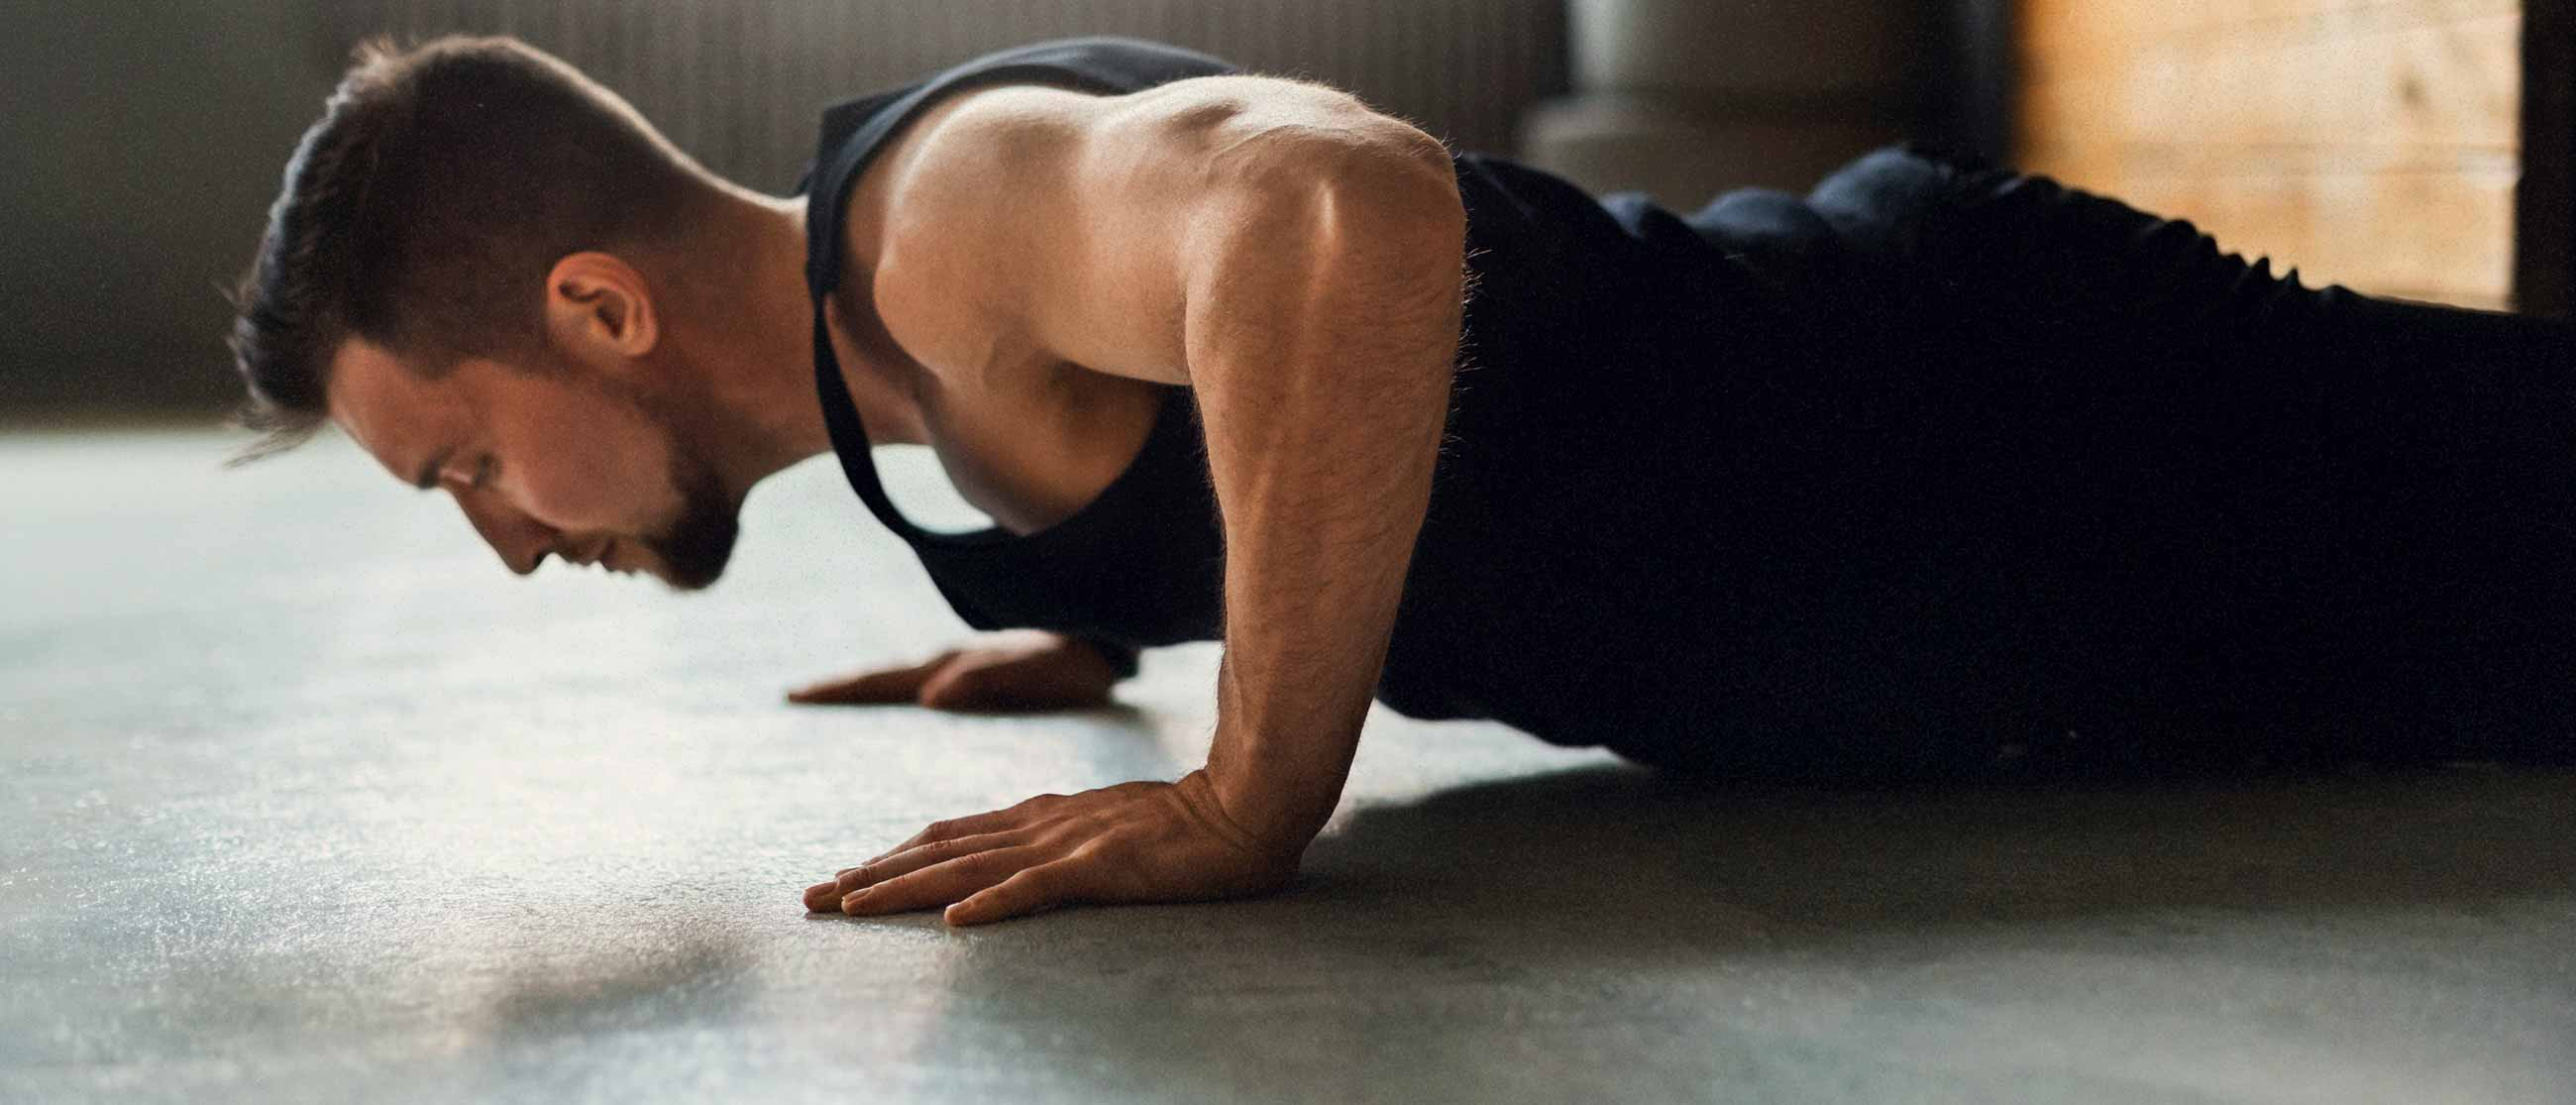 The best bodyweight workout for beginners—no gym needed